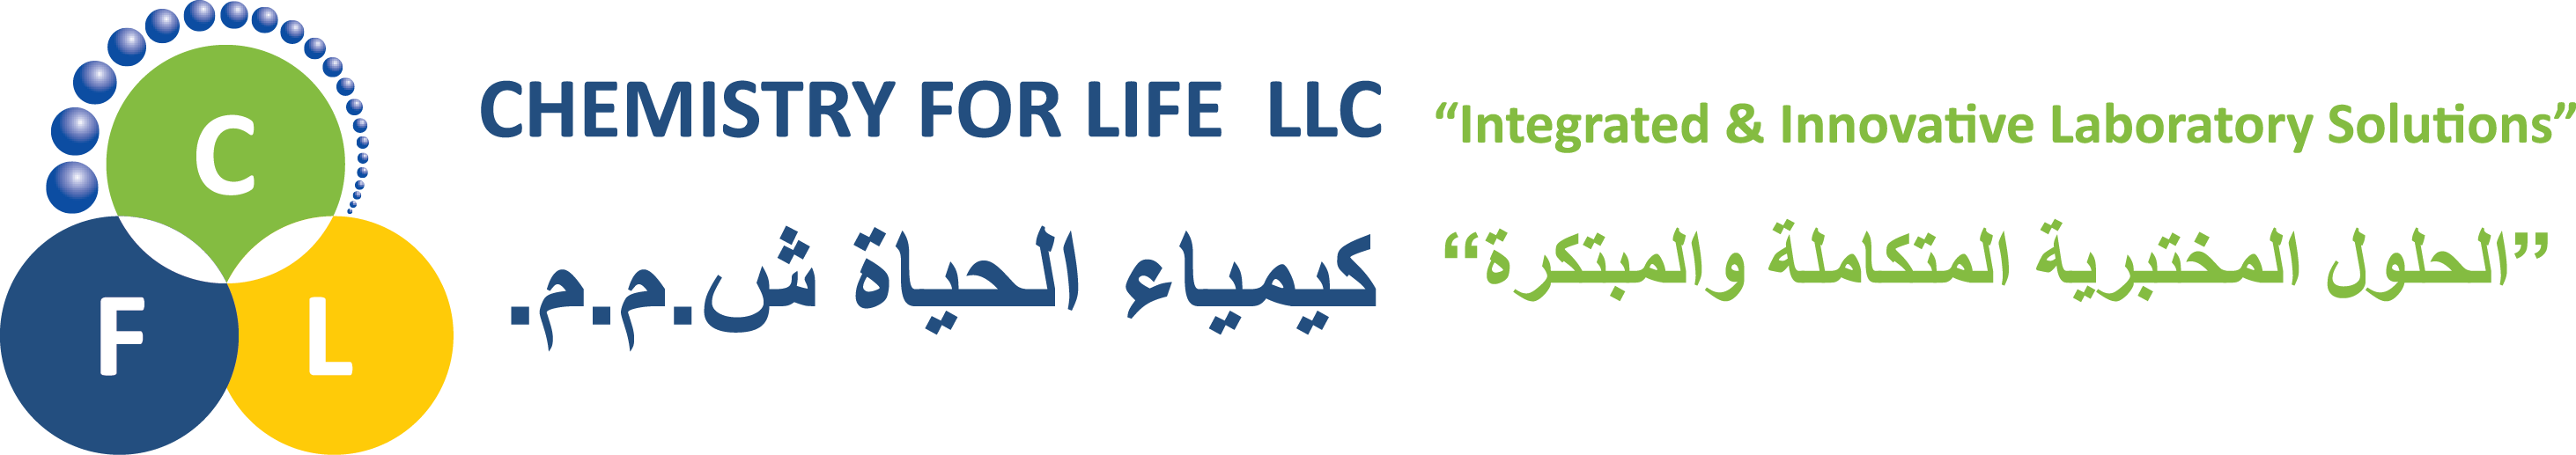 Chemistry For Life LLC